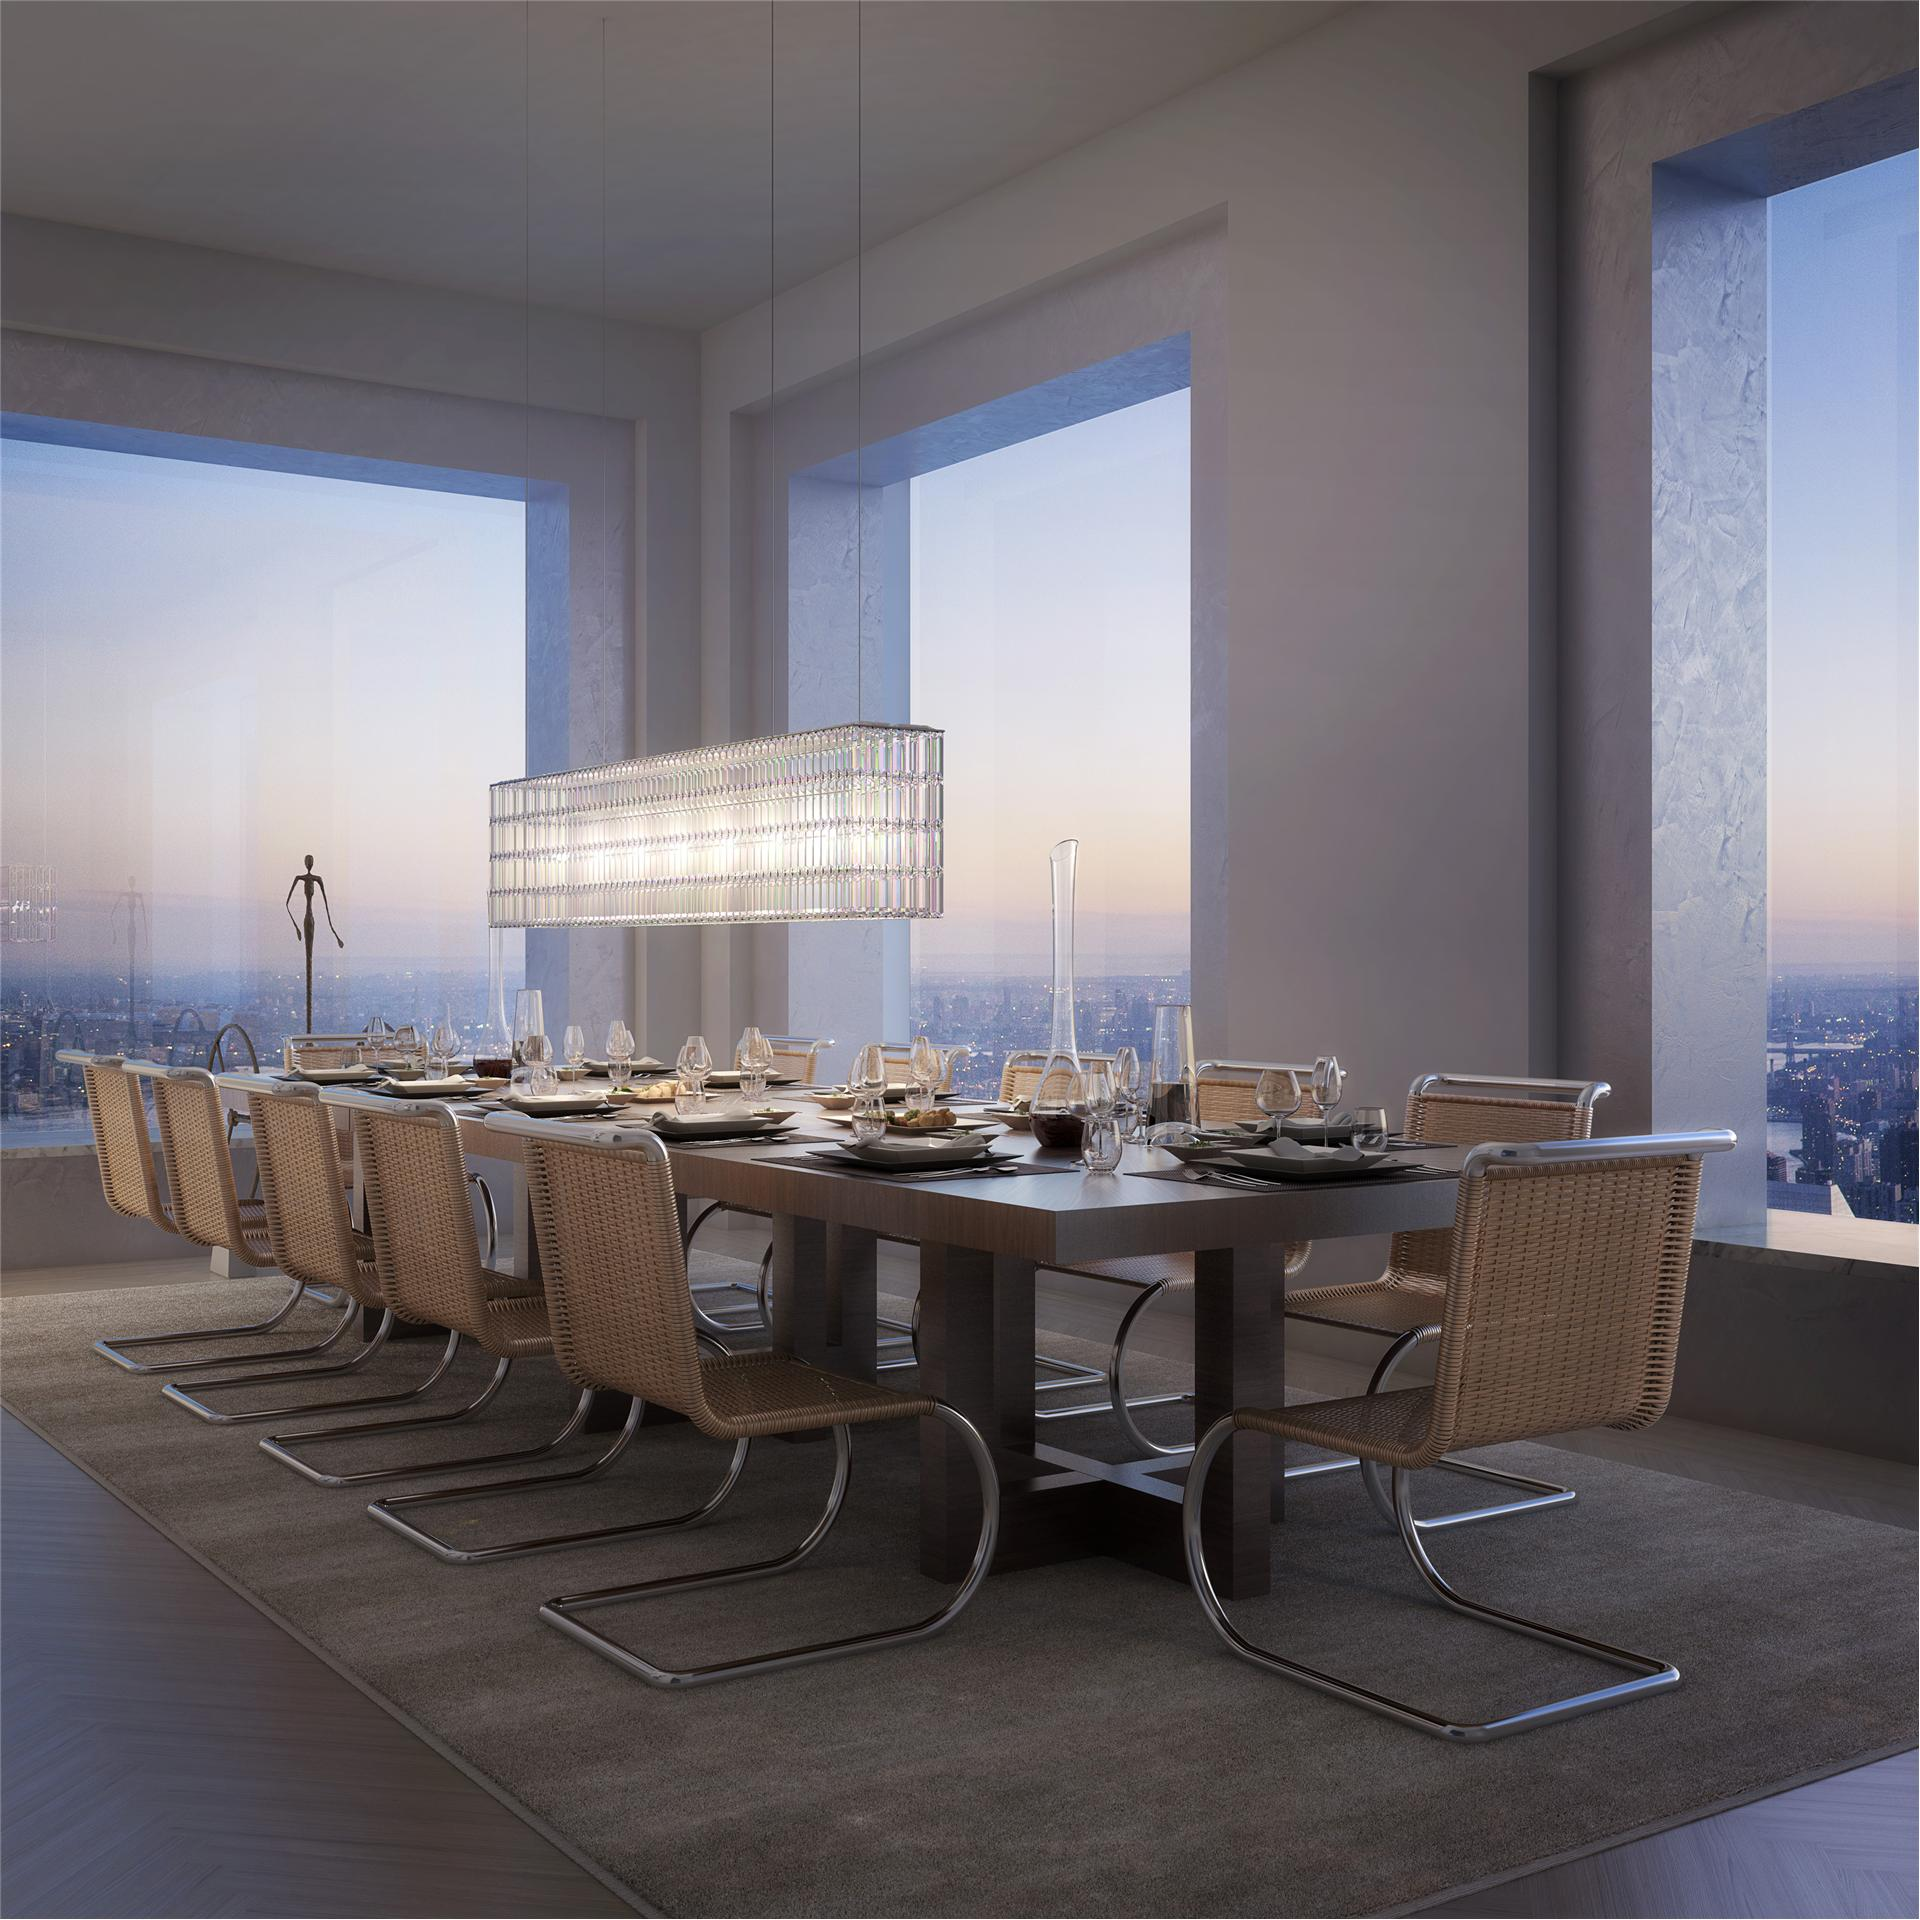 ... $95 Million Dollar Luxury Penthouse In New York 04 ...